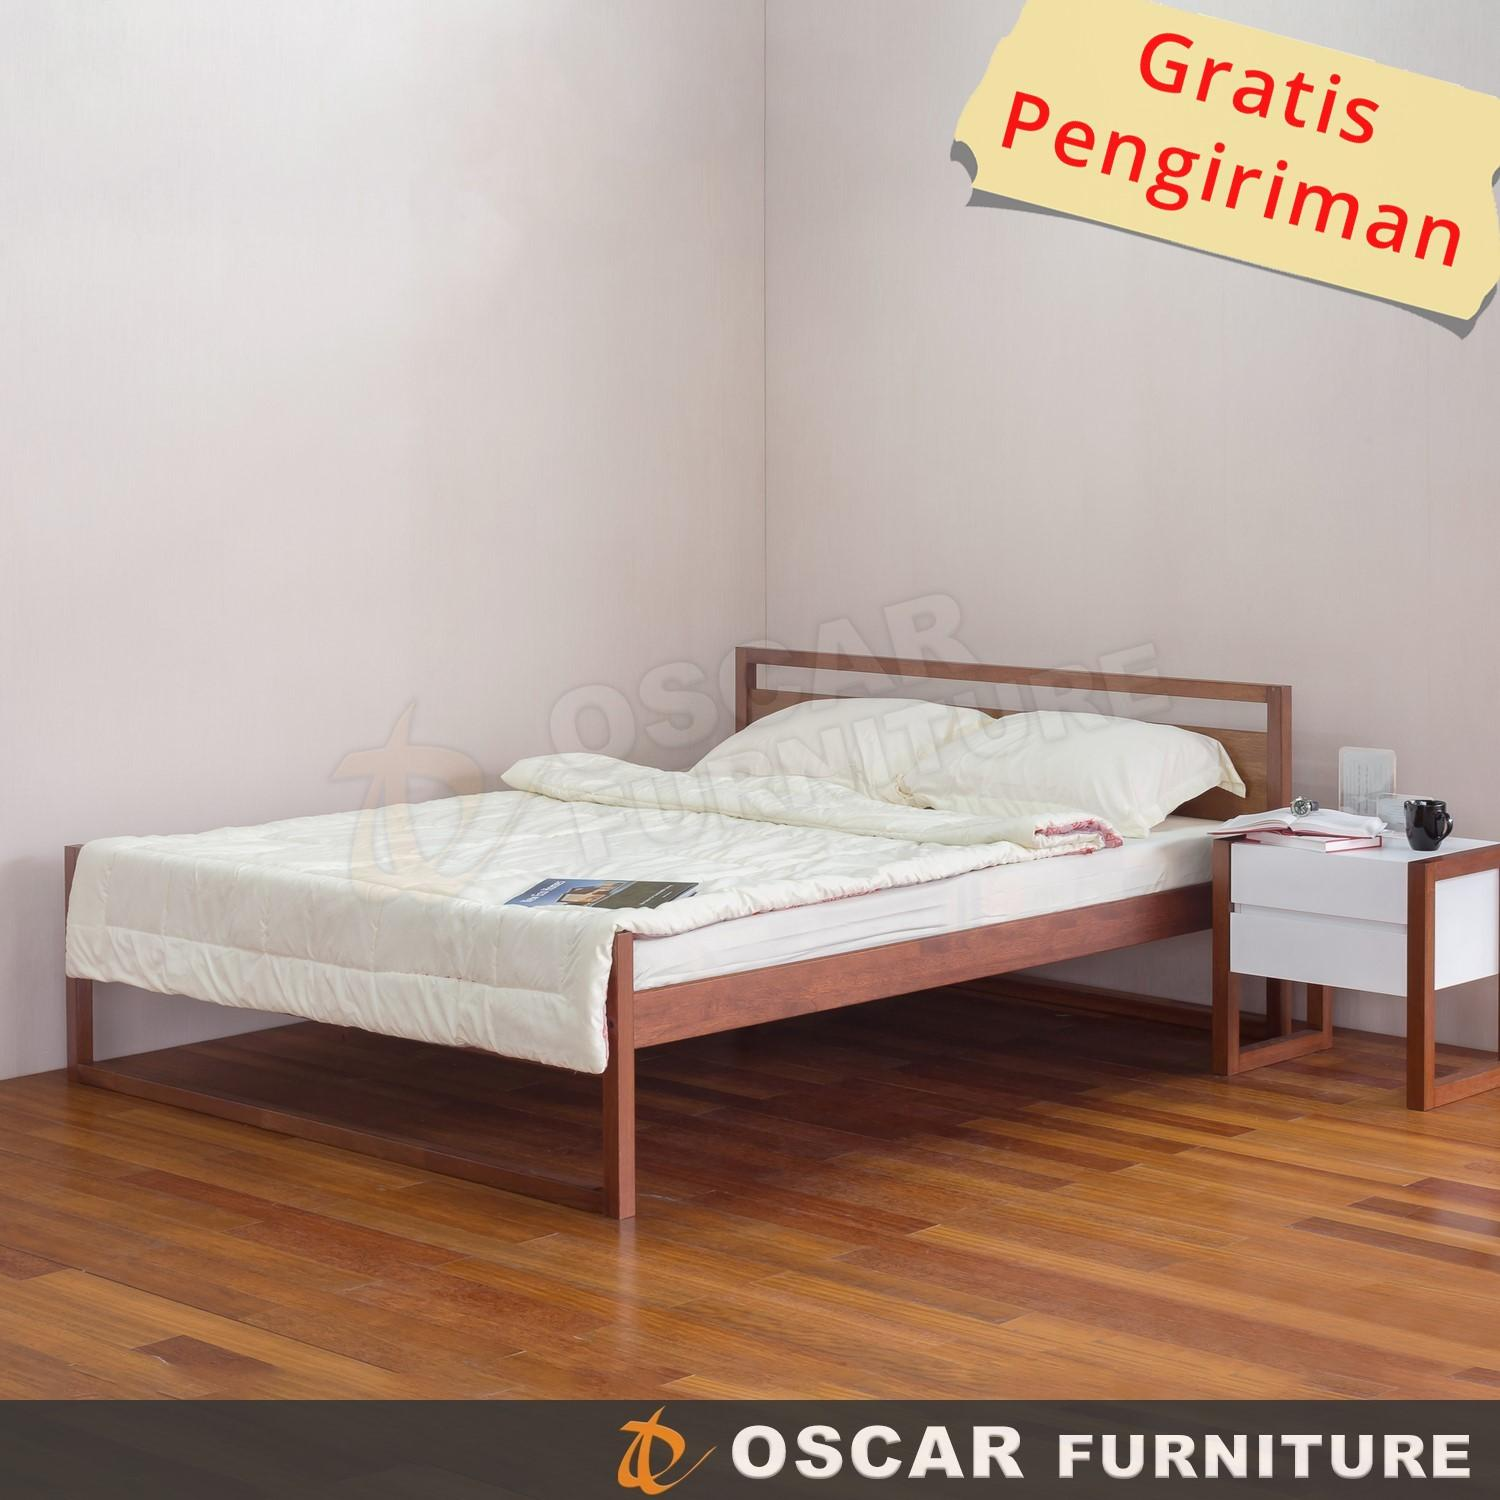 Oscar Furniture - Tempat Tidur Minimalis 160 X 200 (queen) Seri Forte By Oscar Furniture.